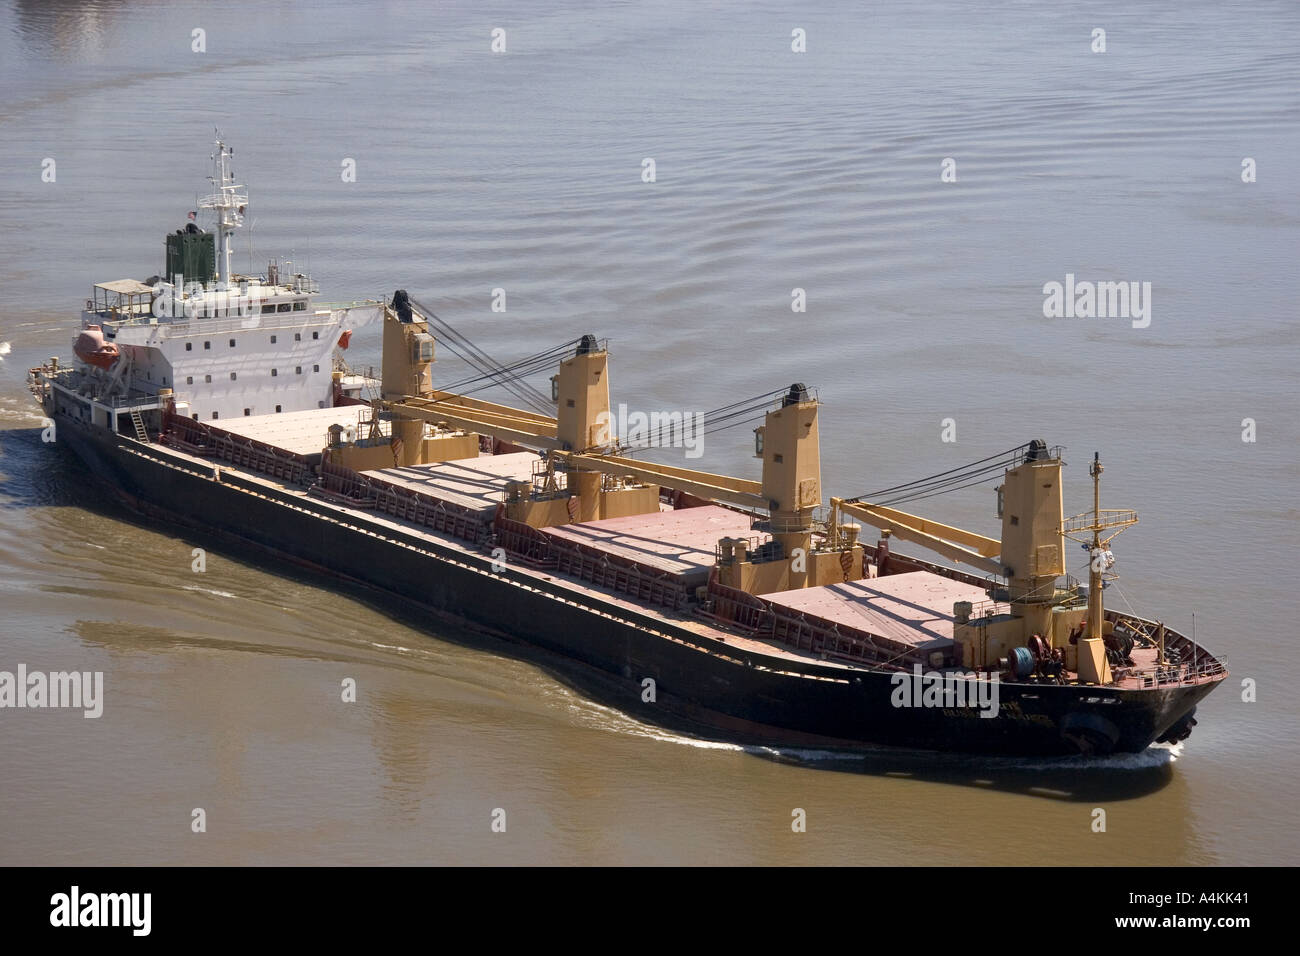 Grain ship on the Mississippi River near New Orleans